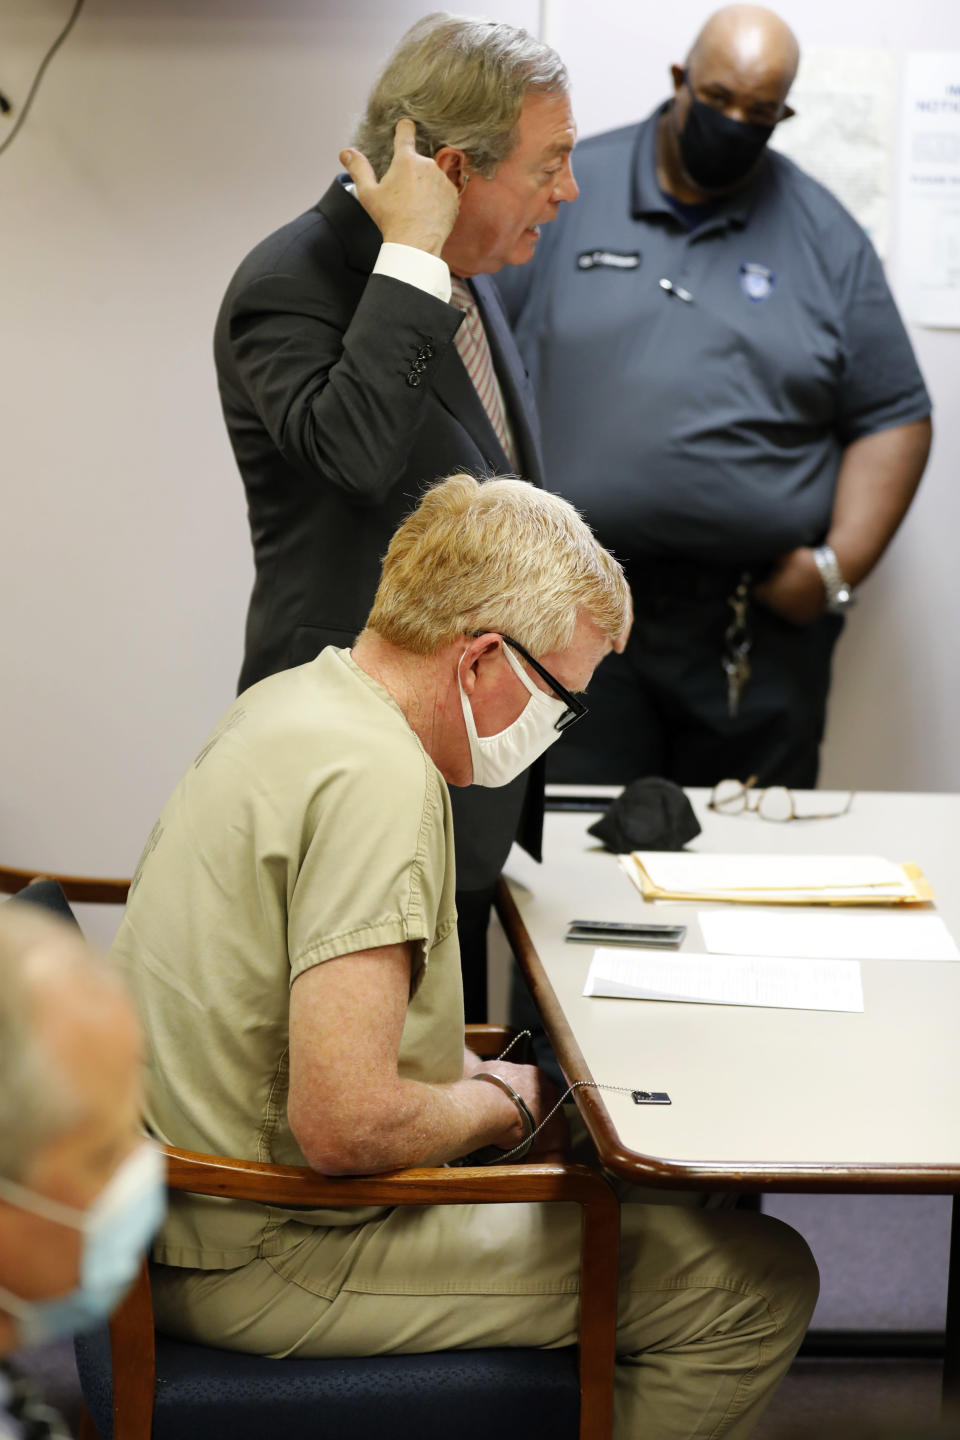 Alex Murdaugh's attorney Dick Harpootlian points to his head where Murdaugh, center, was shot in the head during Murdaugh's bond hearing, Thursday, Sept. 16, 2021, in Varnville, S.C. Murdaugh surrendered Thursday to face insurance fraud and other charges after state police said he arranged to have himself shot in the head so that his son would get a $10 million life insurance payout. (AP Photo/Mic Smith)